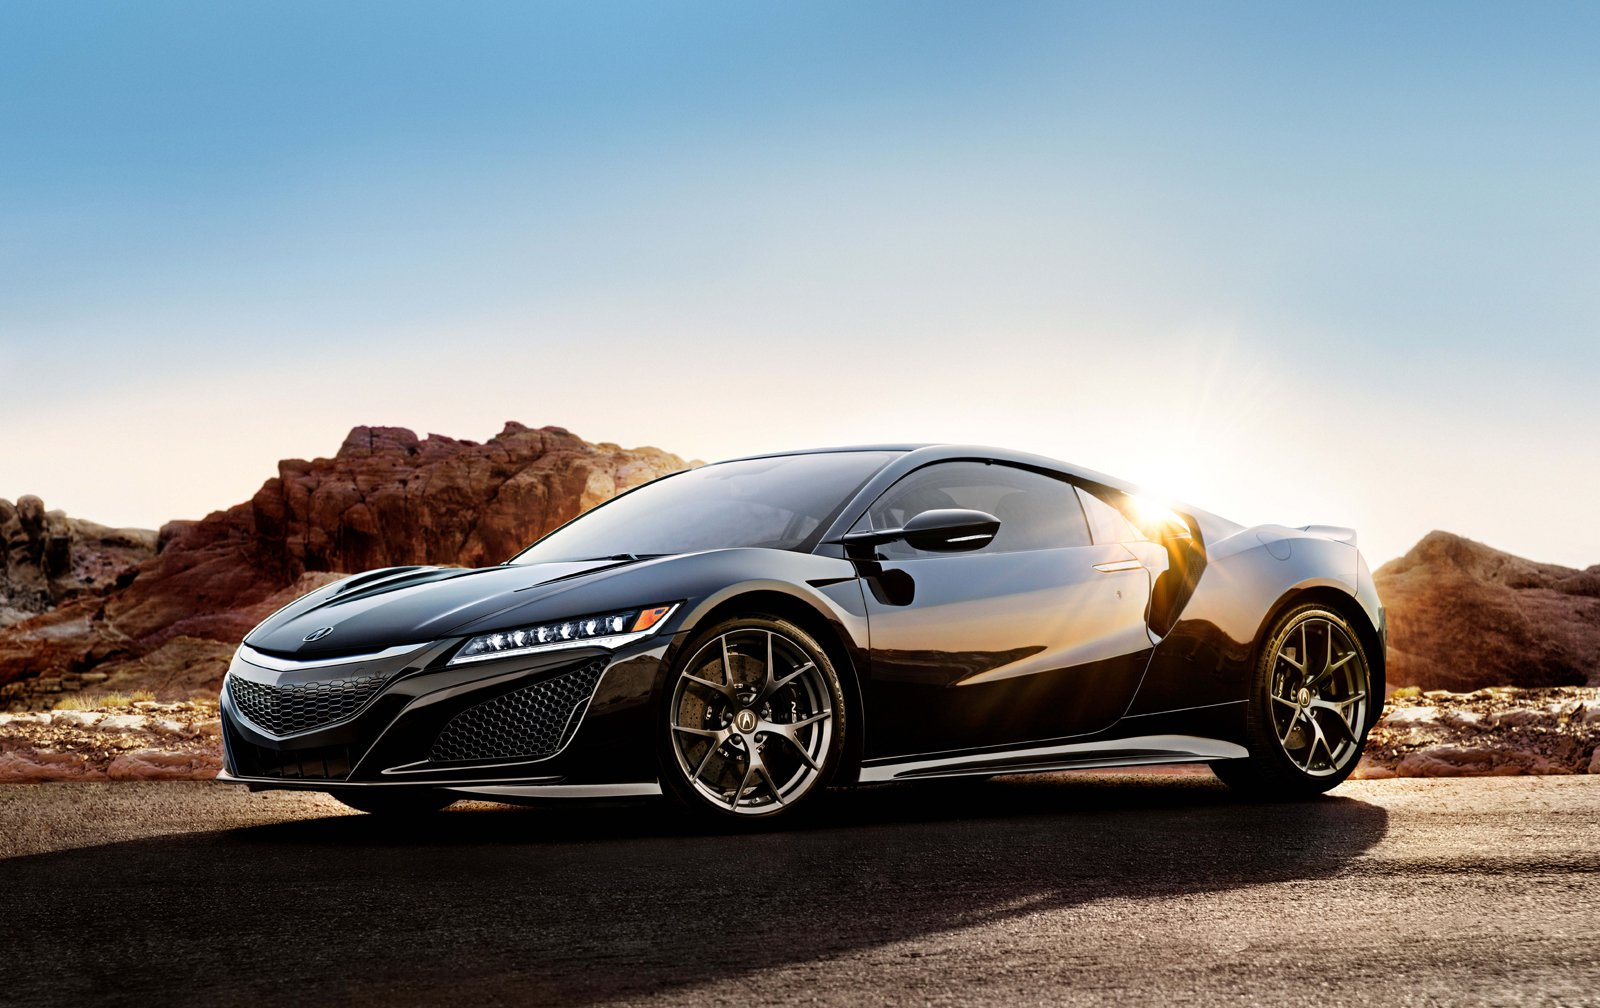 The First Production Acura NSX Fetches $1.2 Million at Auction